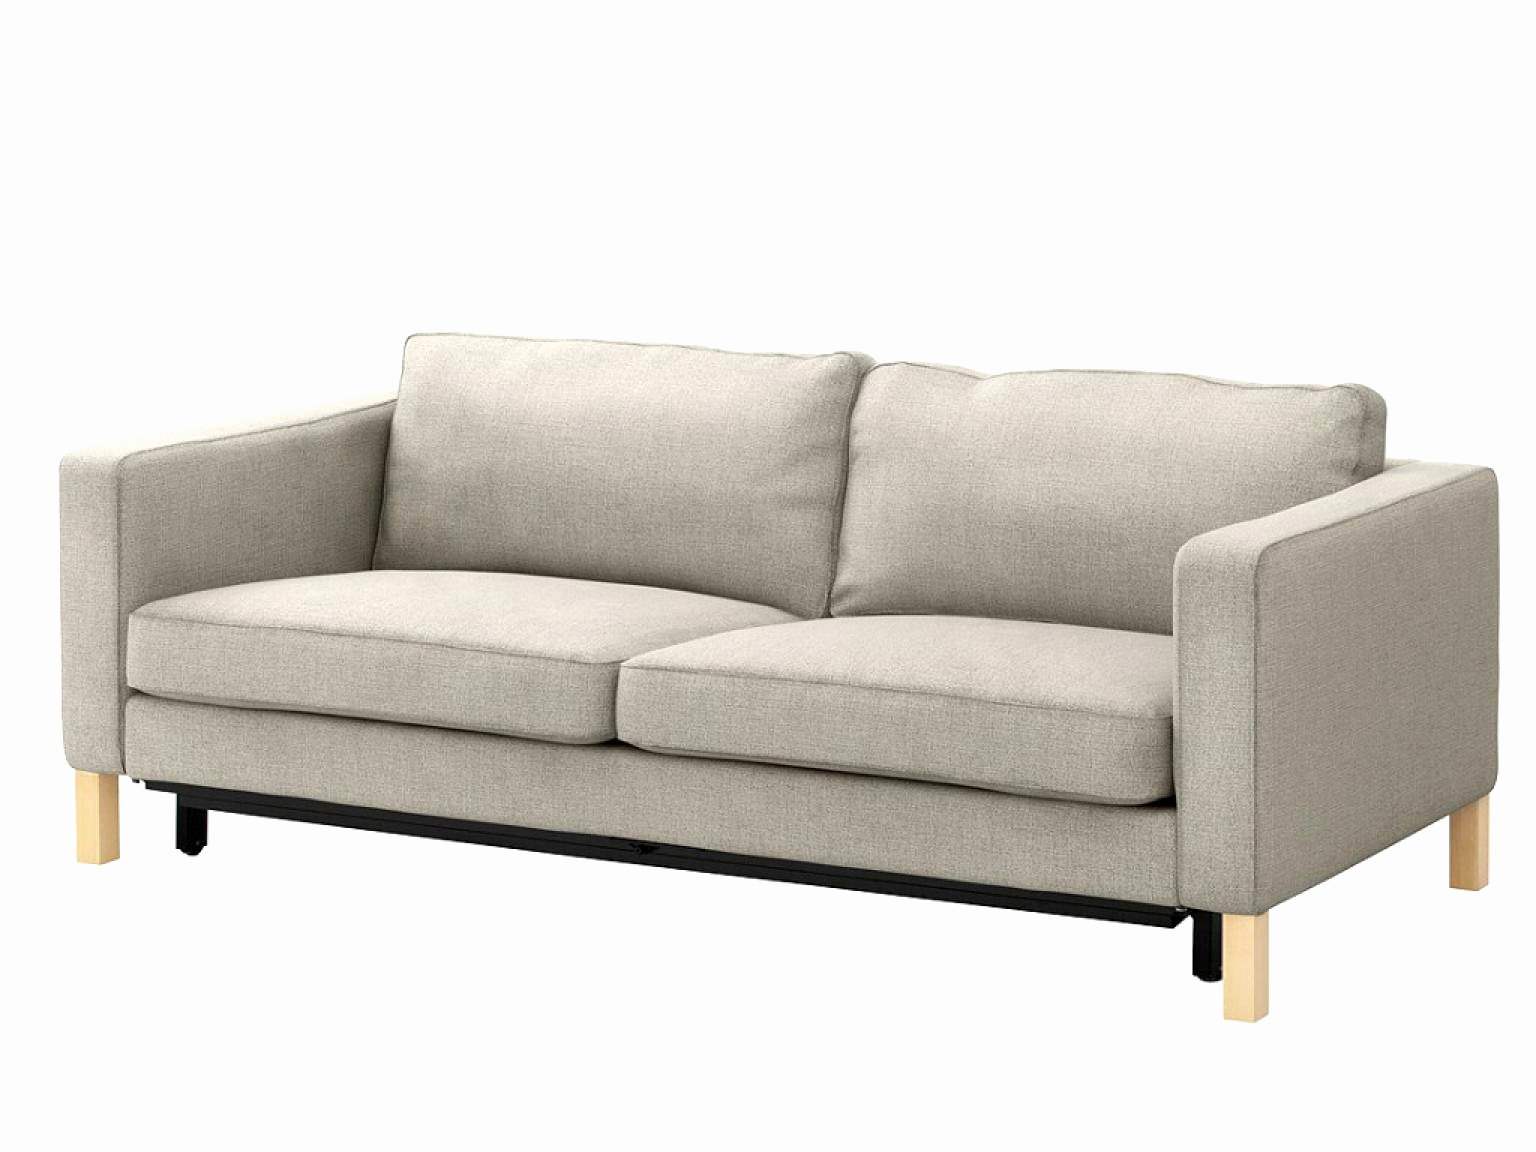 Ikea Housse Clic Clac Luxe Stock Convertible 2 Places Ikea Frais Convertible 2 Places Ikea Beau